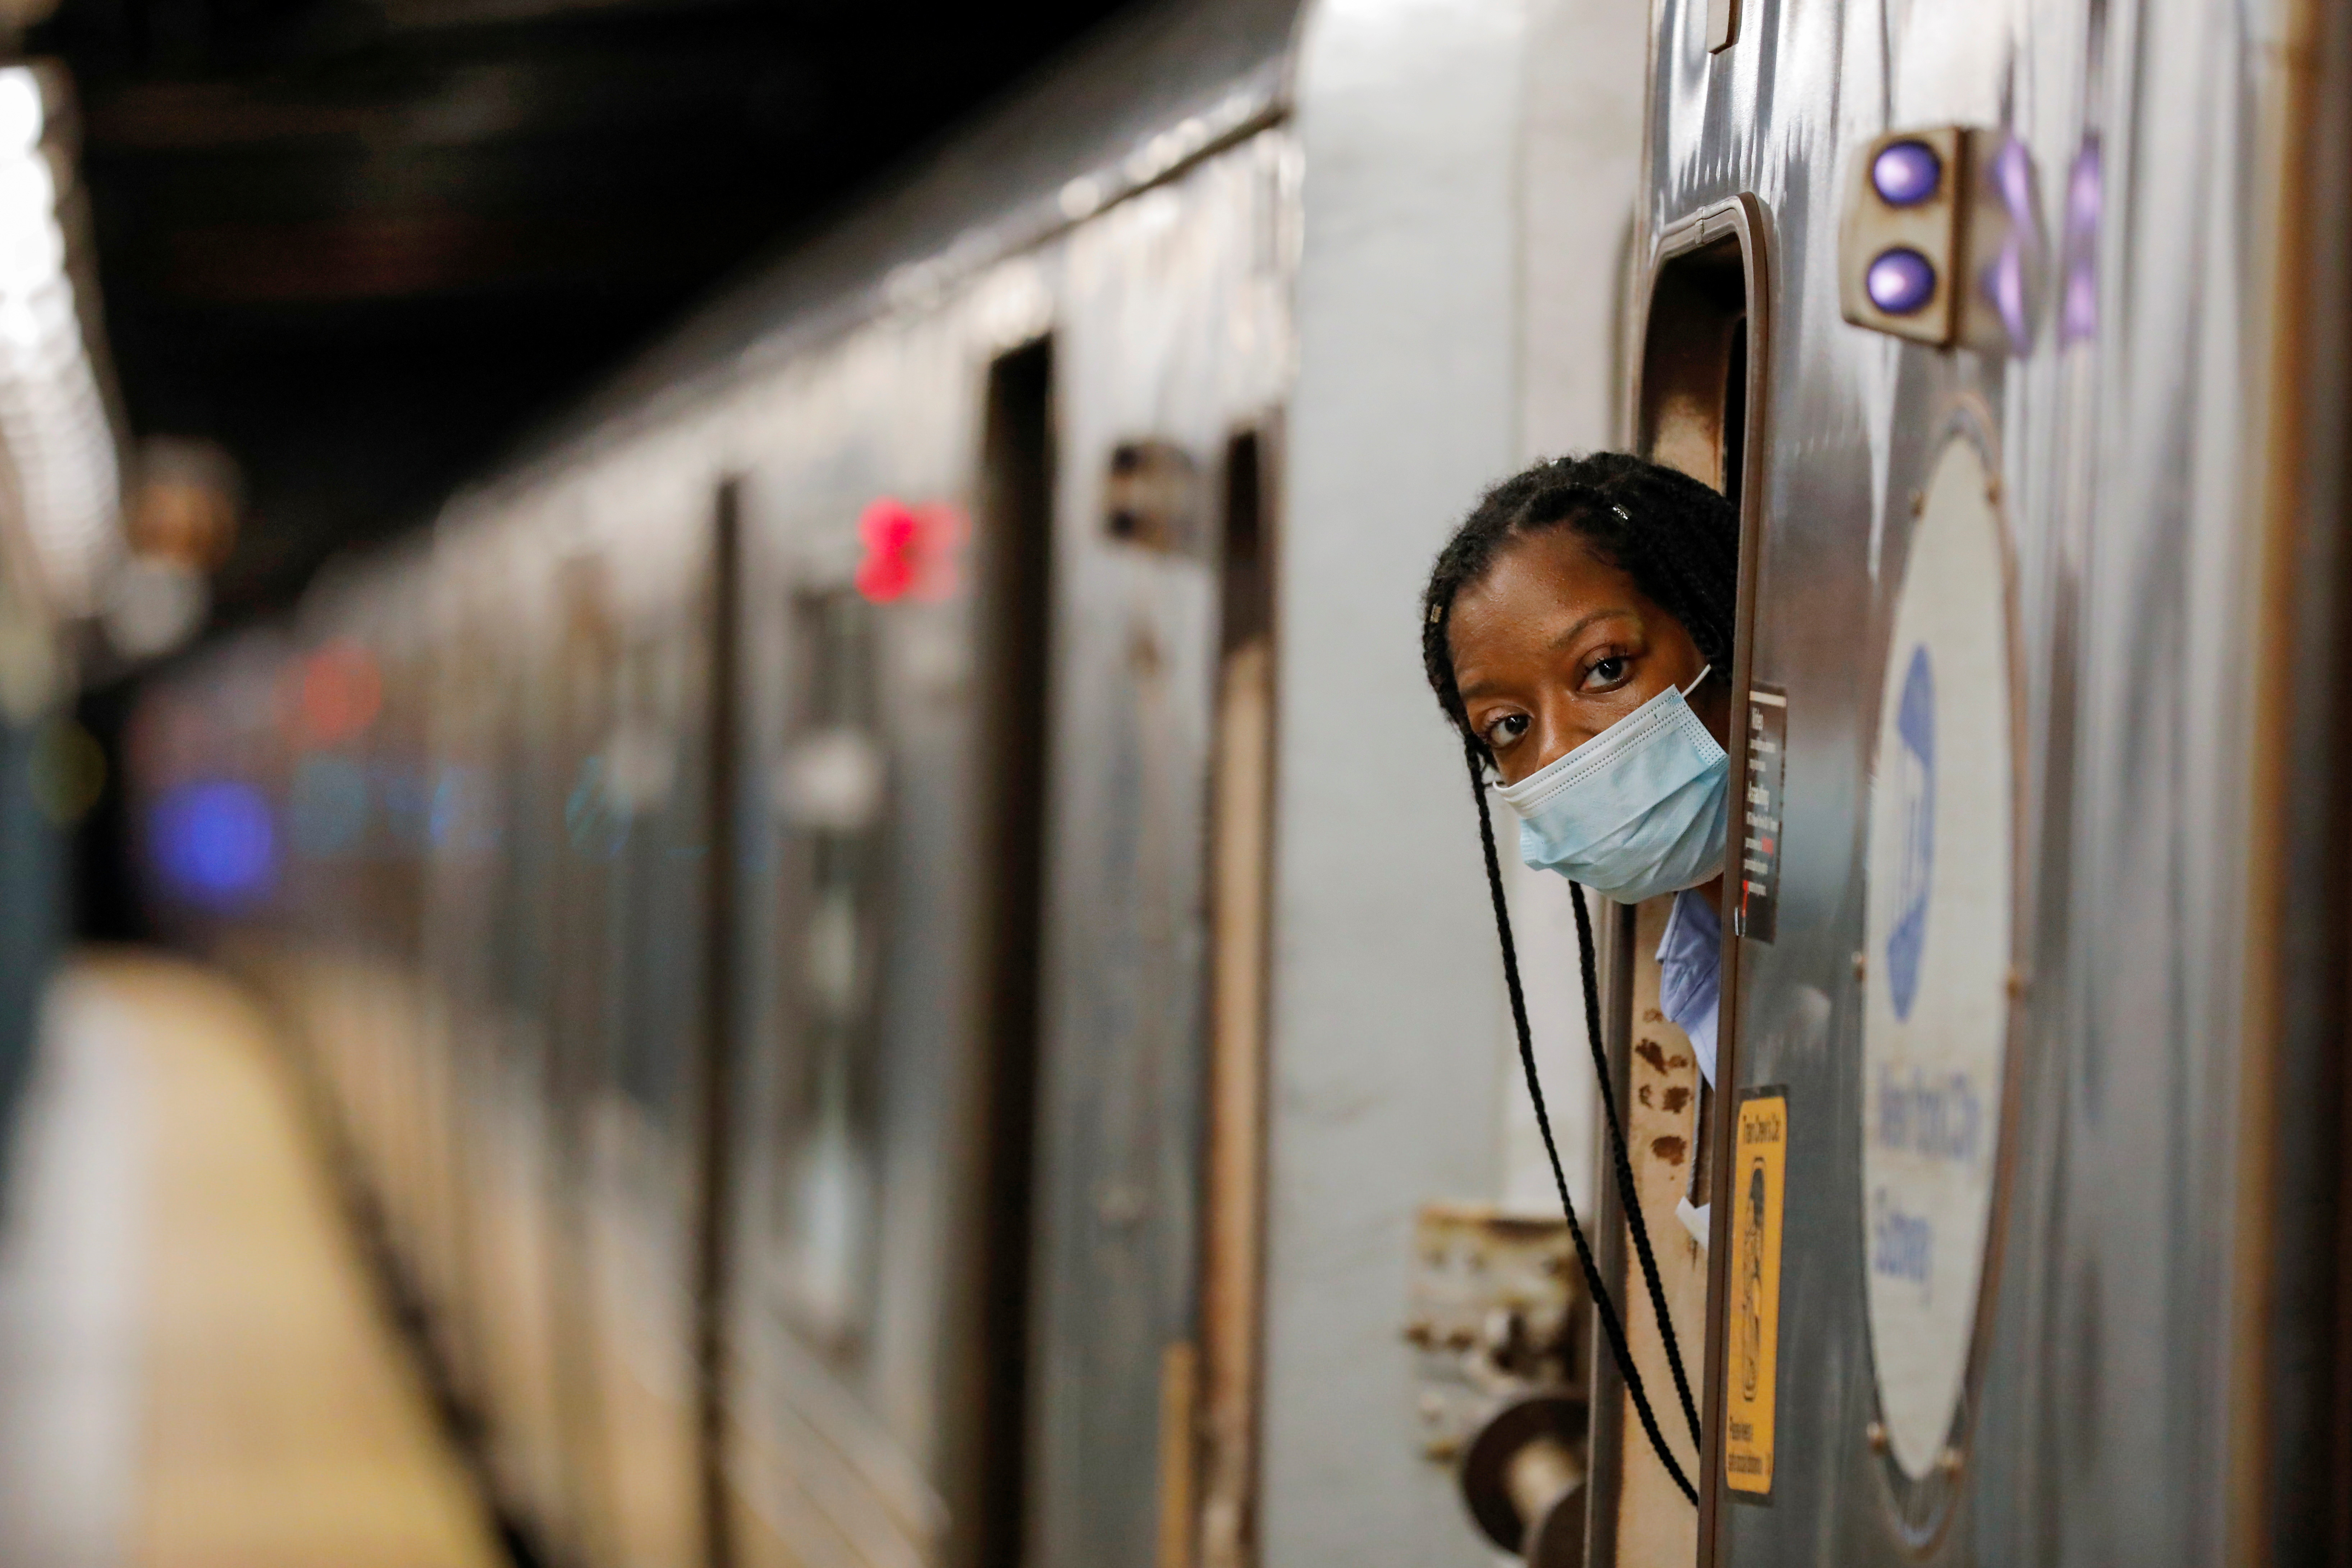 An MTA worker is seen wearing a mask on the subway after The Port Authority of New York and New Jersey and the Metropolitan Transportation Authority (MTA) announced a mandatory coronavirus vaccination or weekly test mandate for employees in New York City, New York, U.S., August 2, 2021. REUTERS/Andrew Kelly - RC22XO9OQ7R0